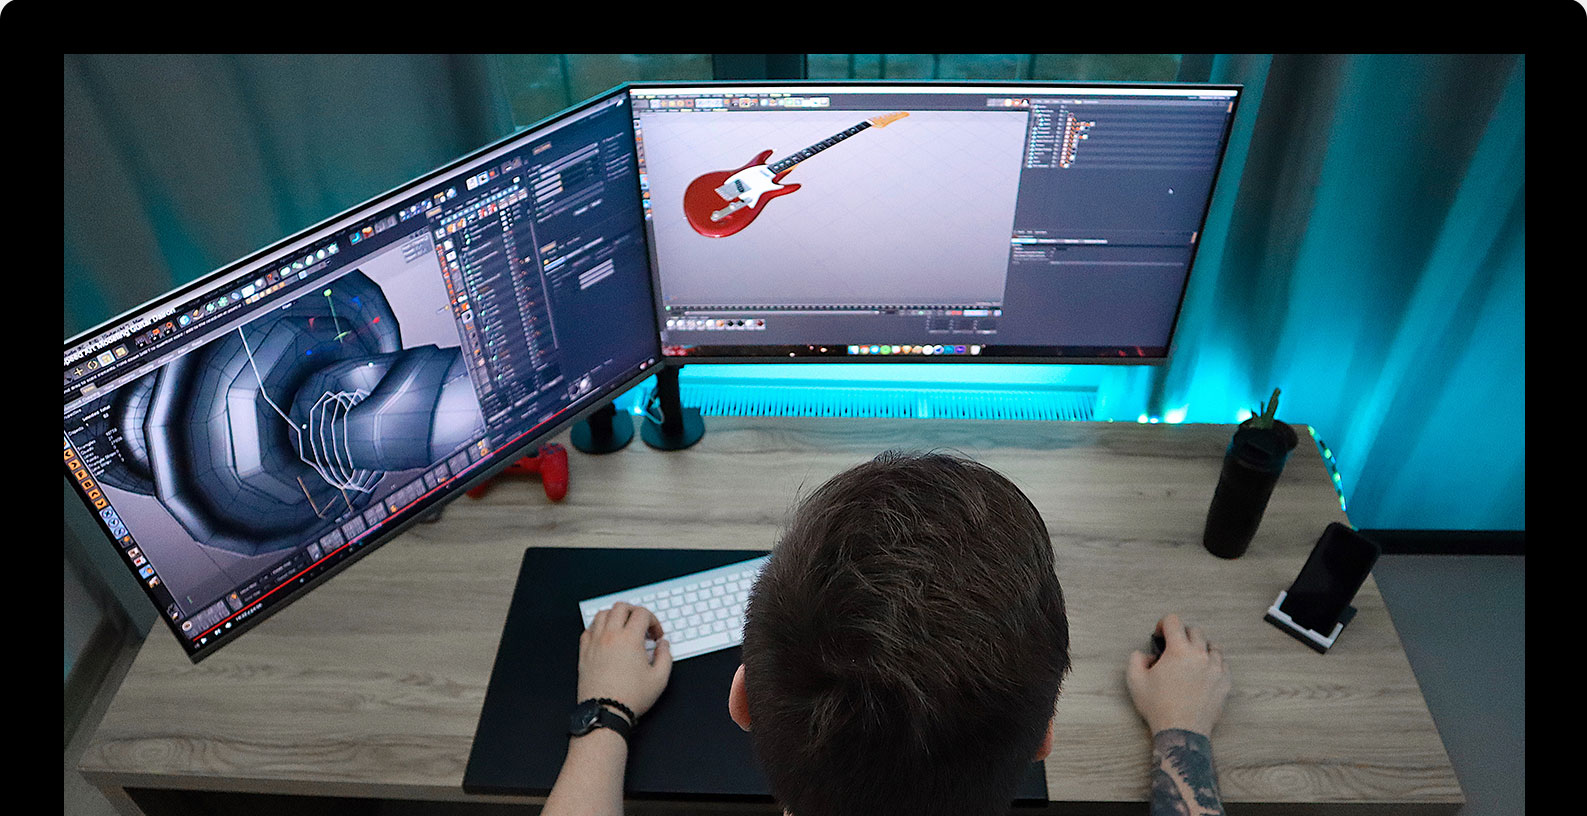 Man sitting in front of workstation with 3d model of a guitar